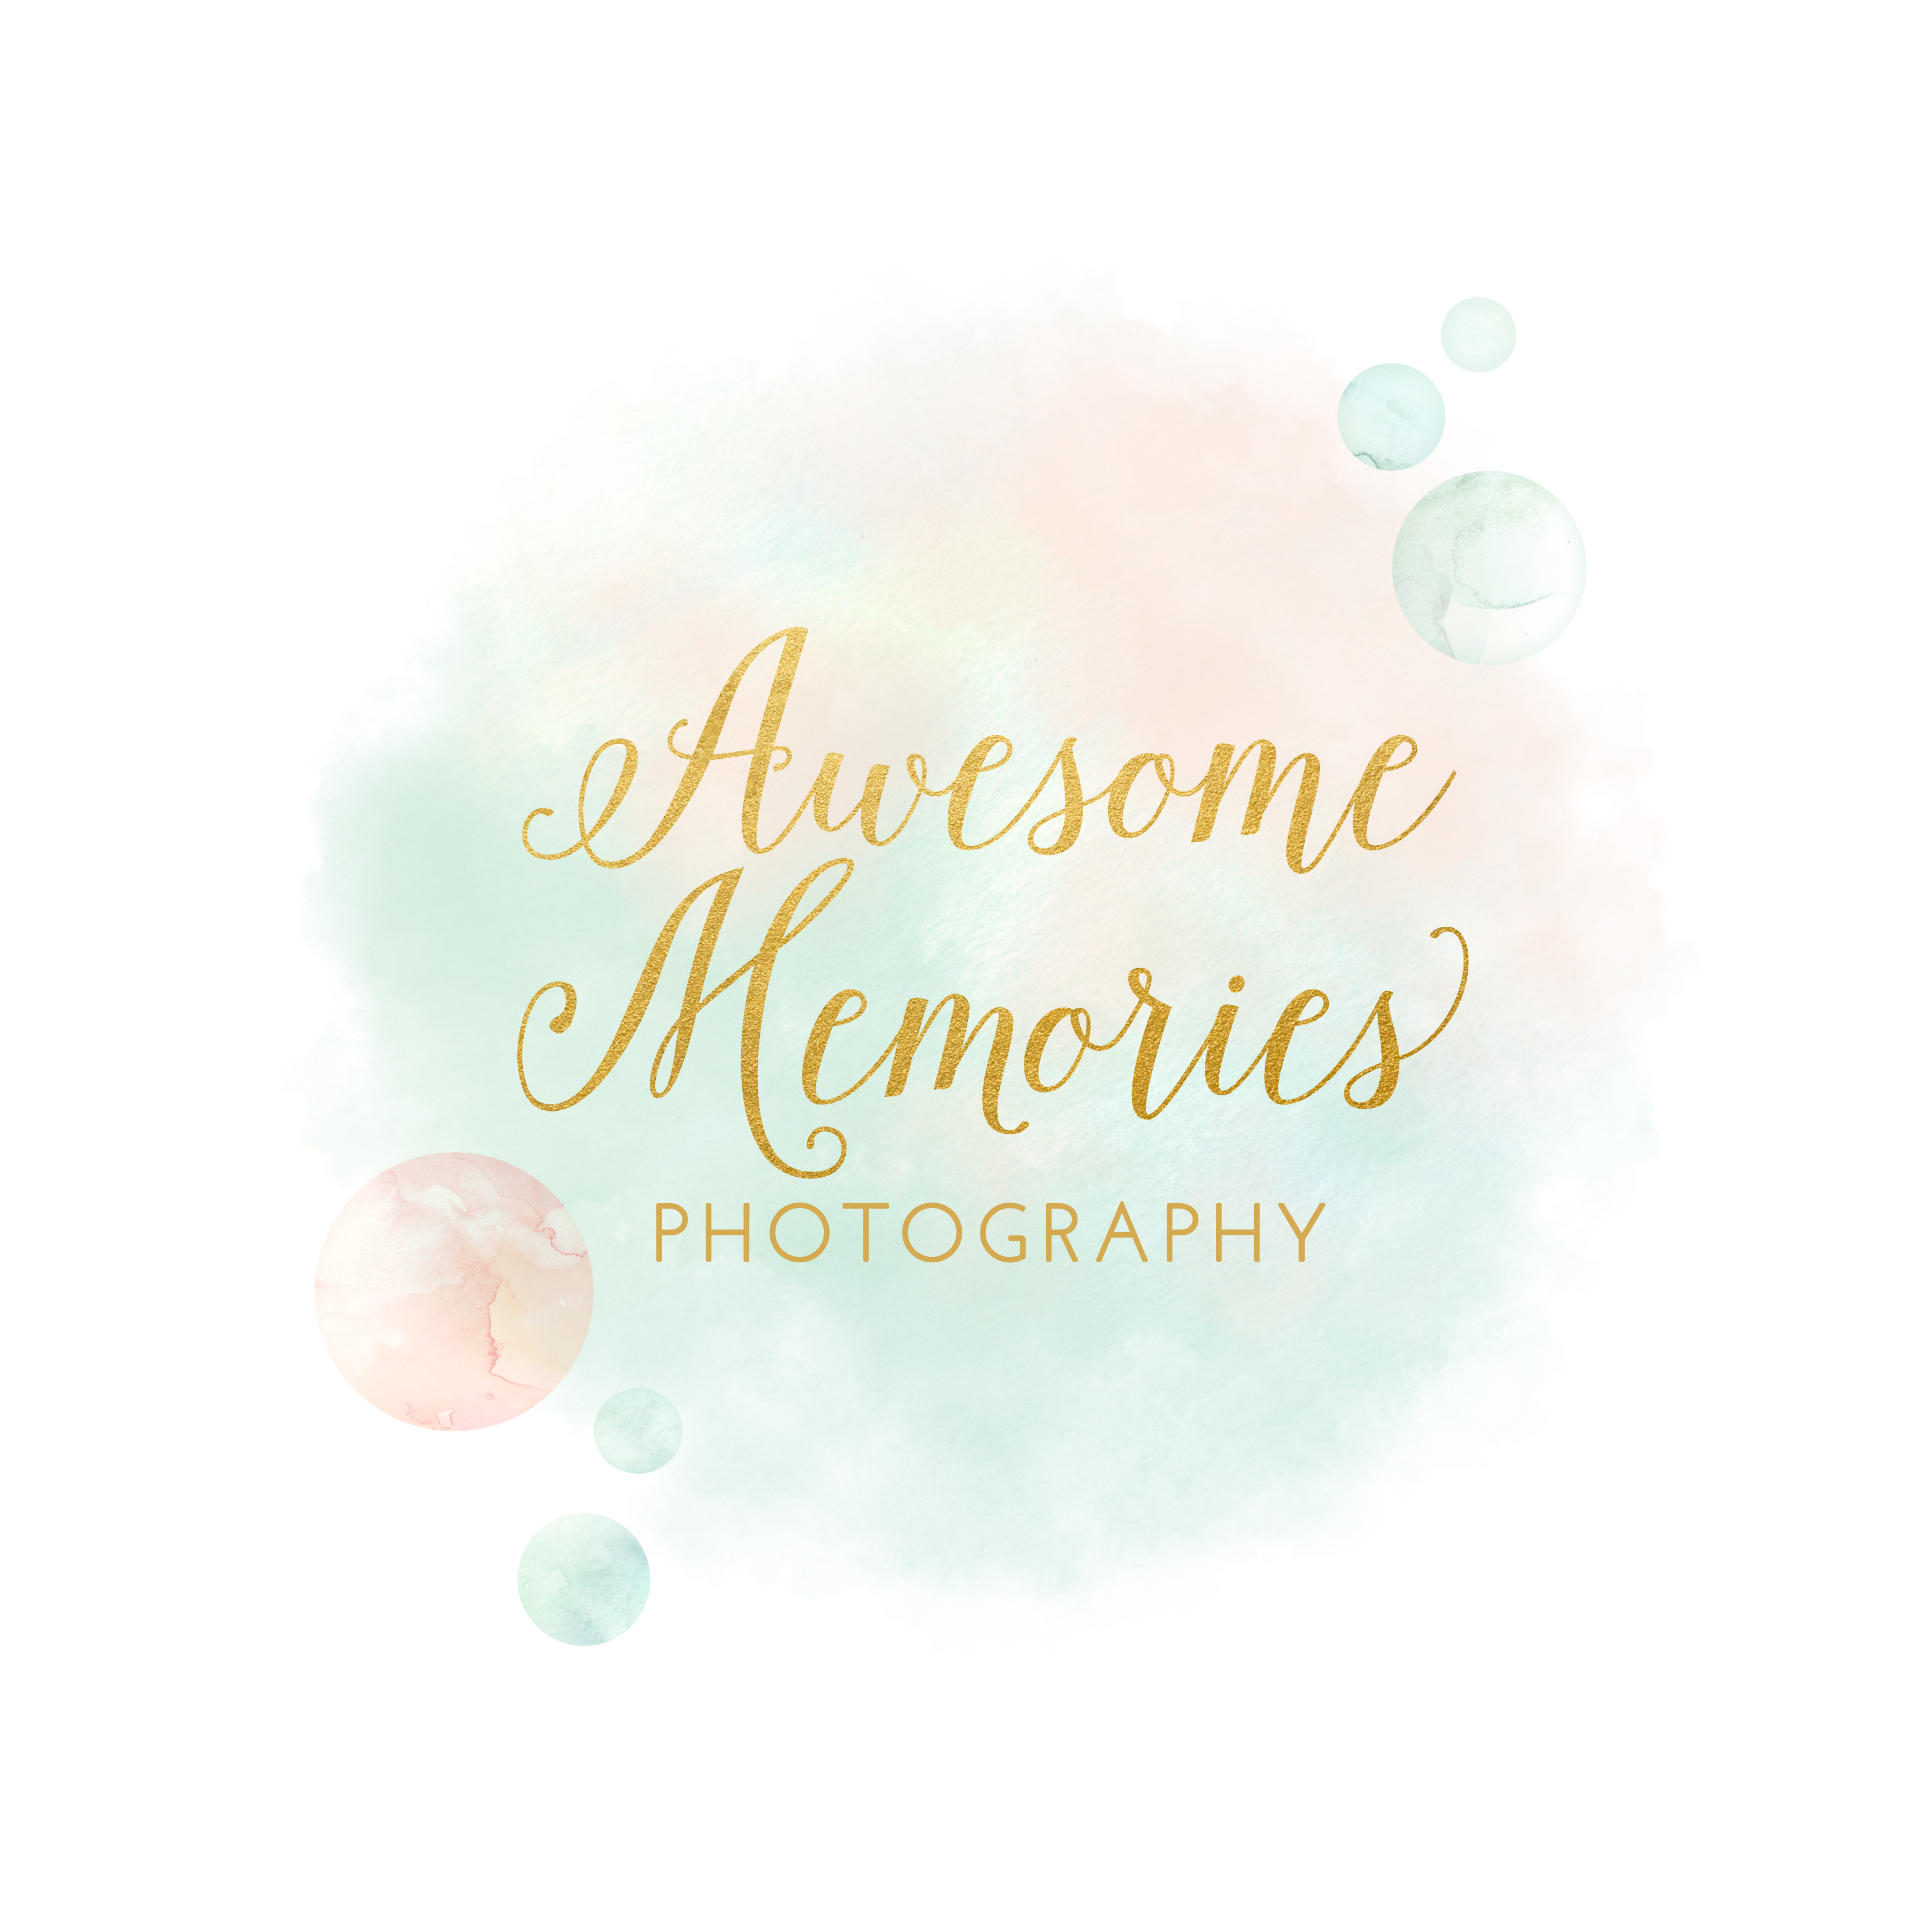 Awesome Memories